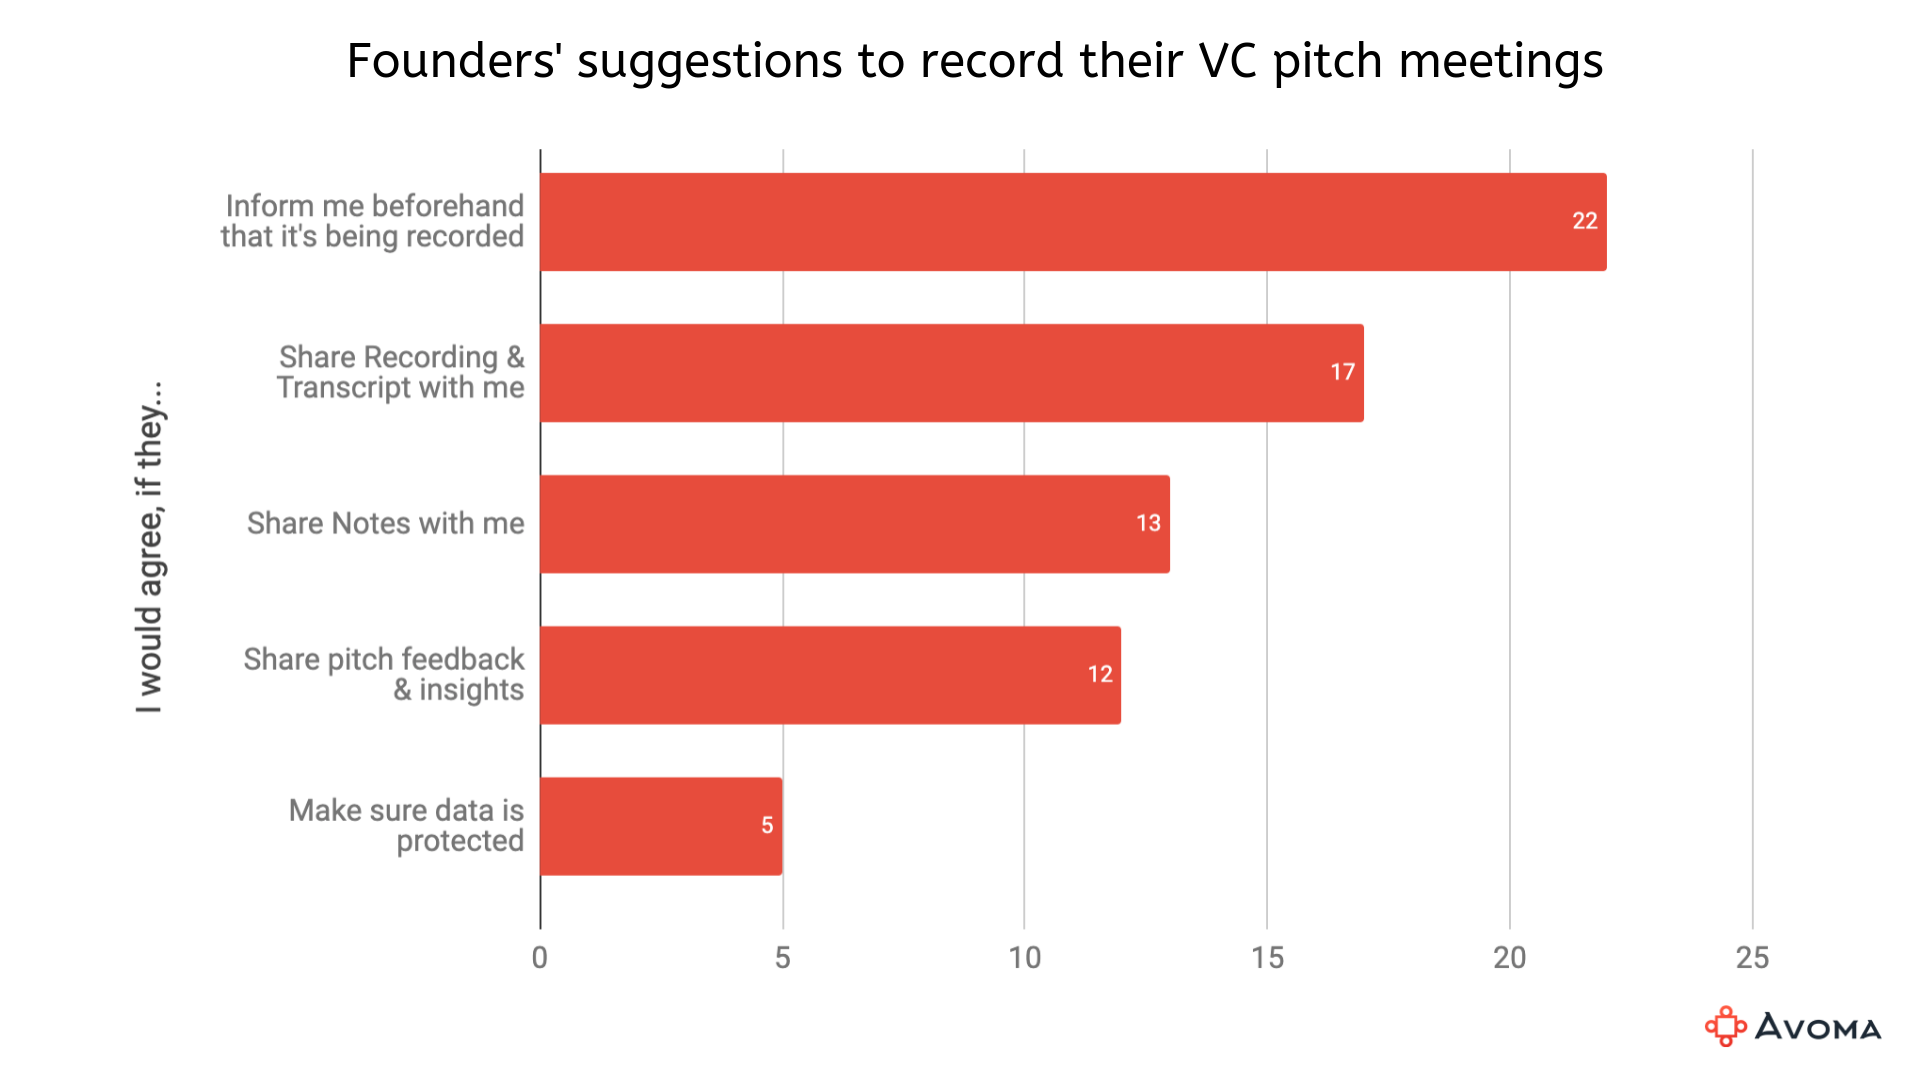 Founders' suggestions about recording their VC pitch meetings